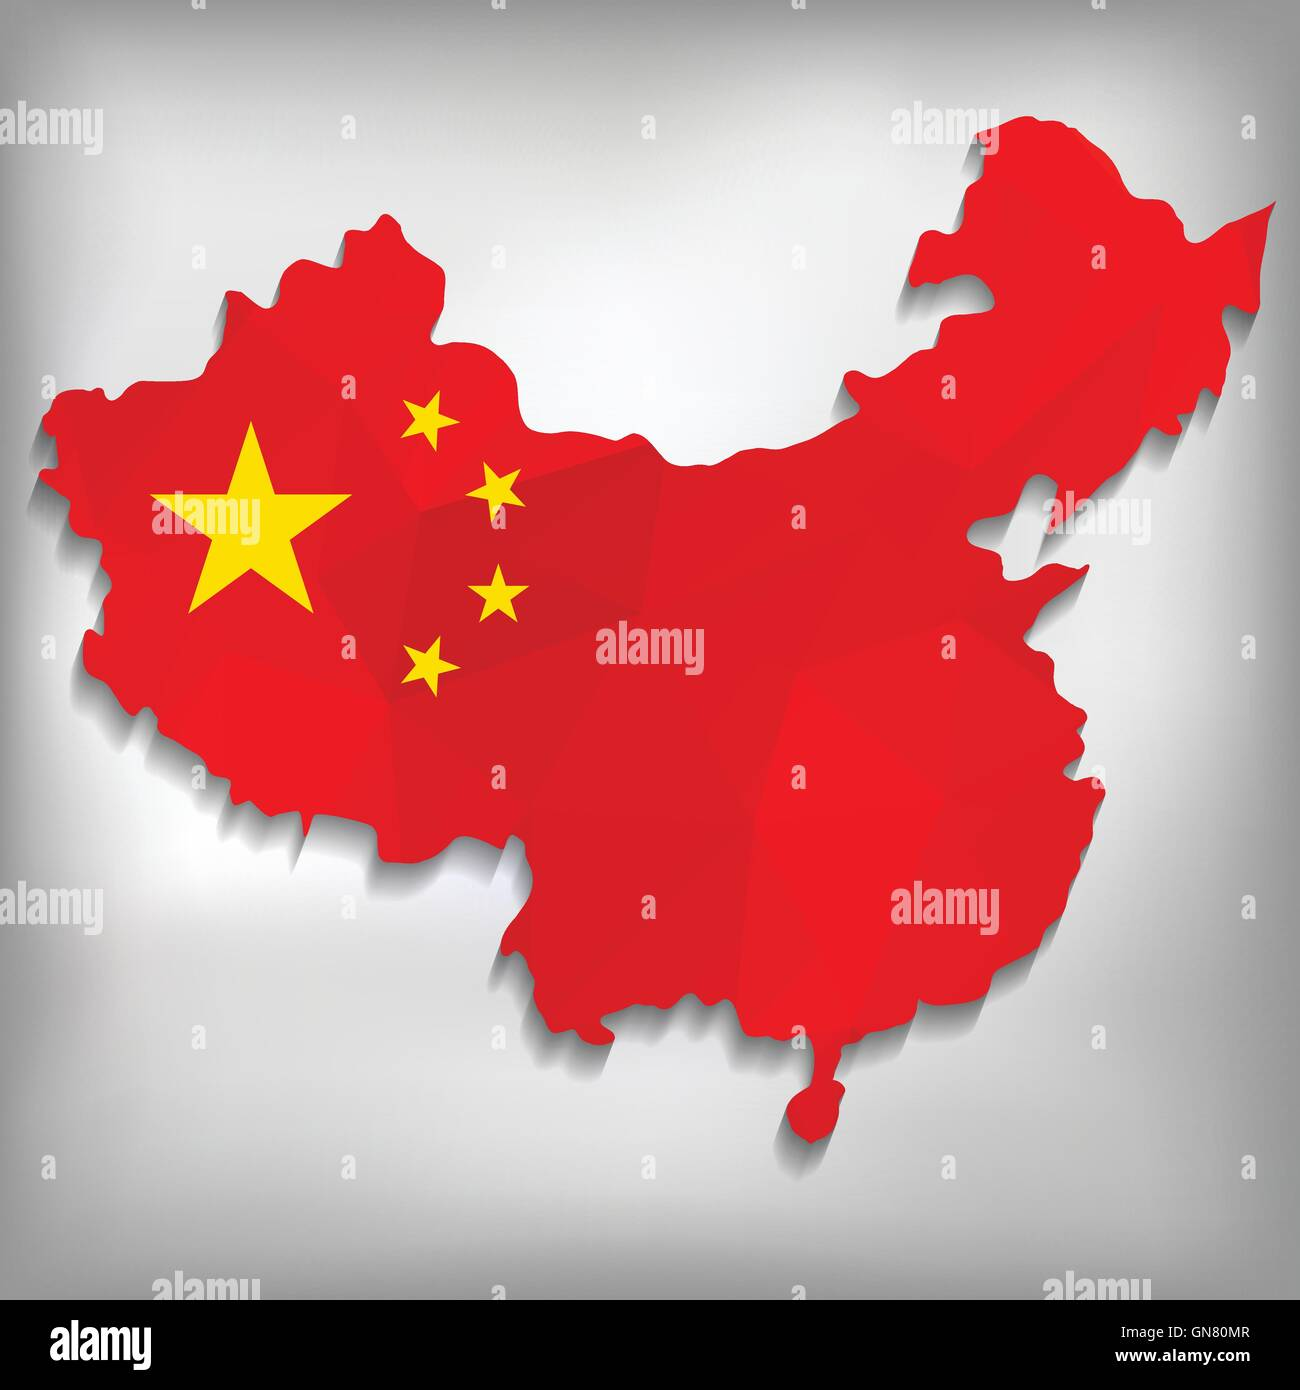 Map of China with geometric polygonal design - Stock Image